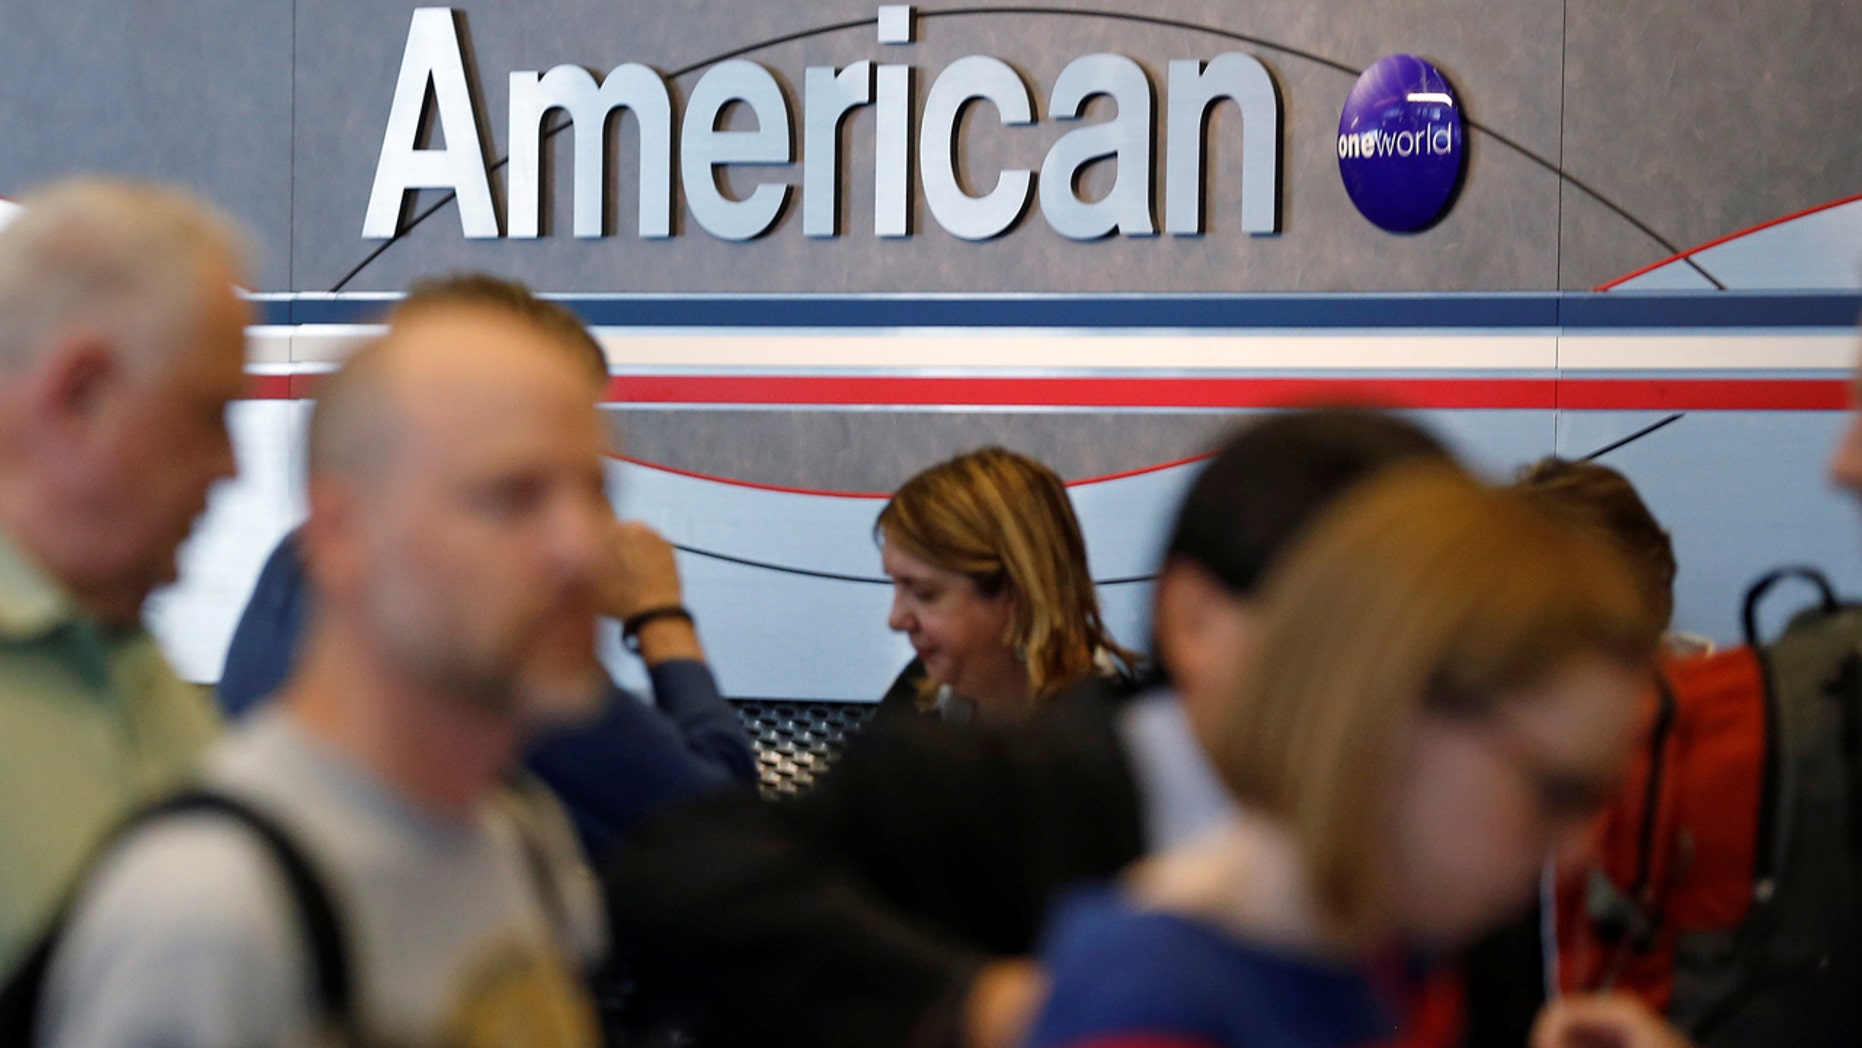 Travelers line up at an American Airlines ticket counter at O'Hare Airport in Chicago, Illinois, May 13, 2014.